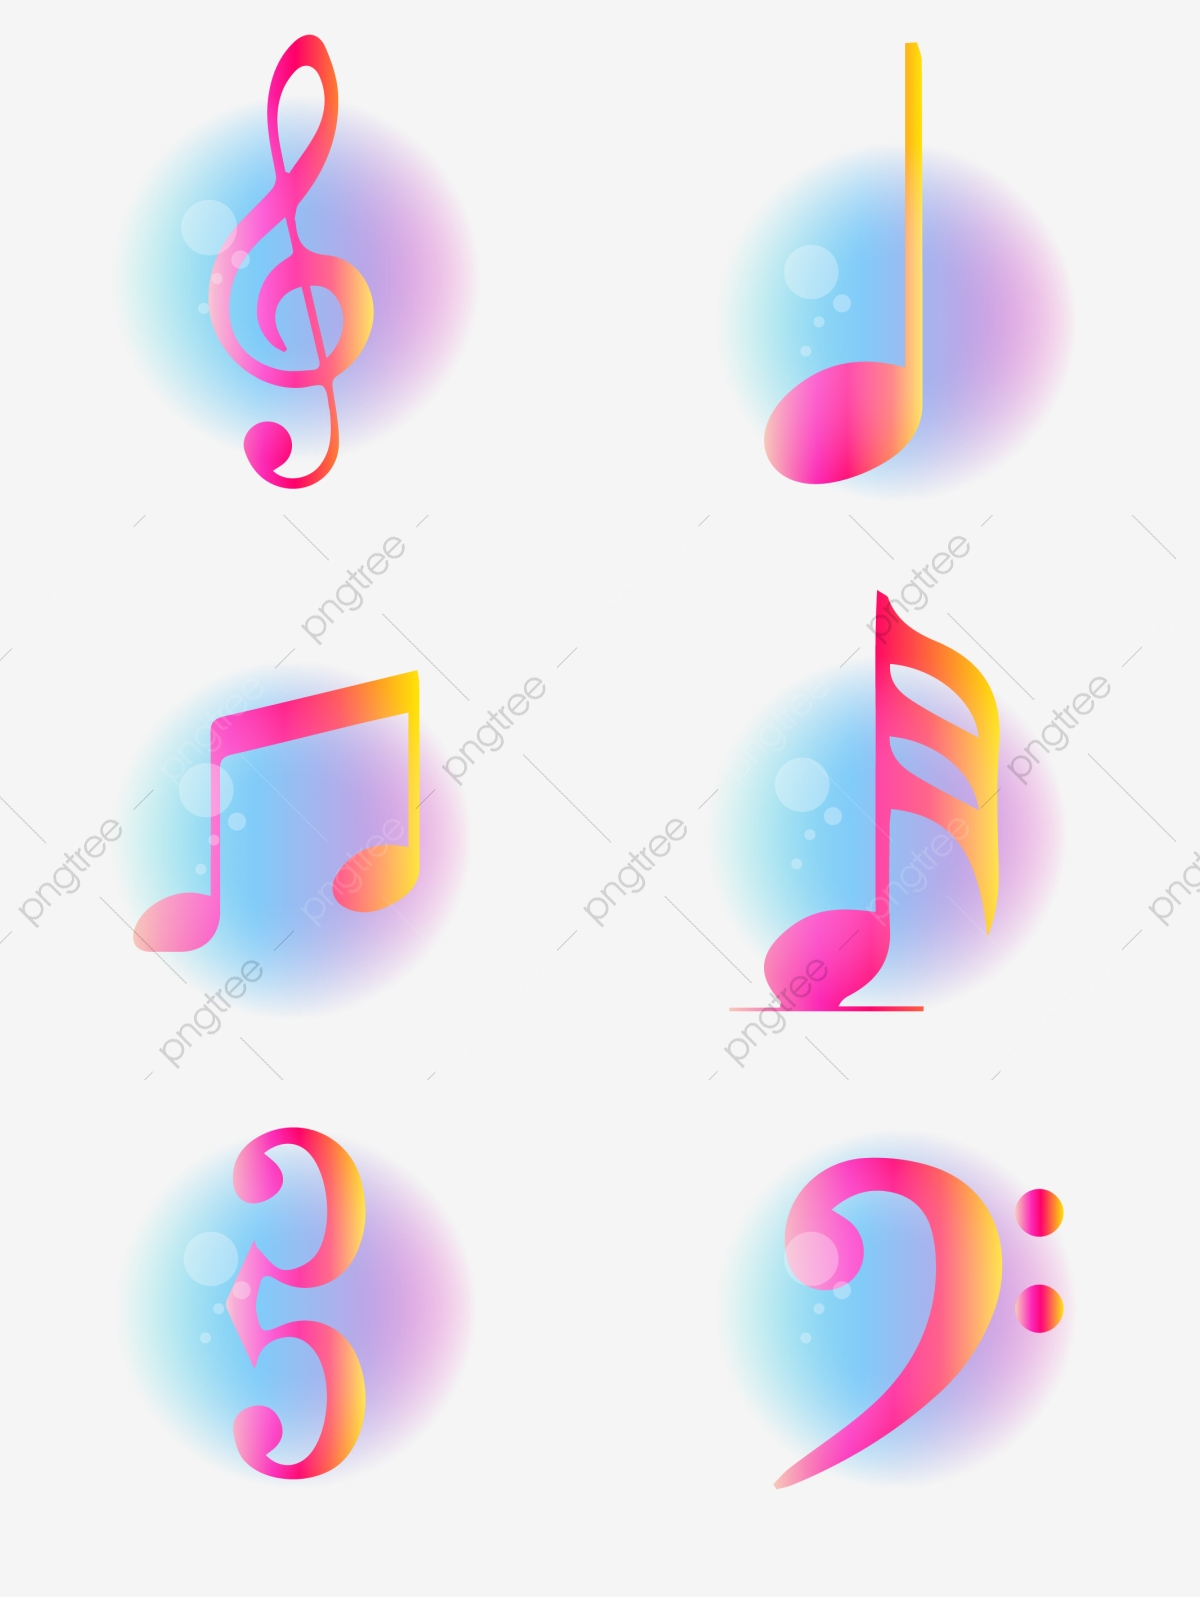 Colorful Gradient Glowing Musical Notes Collection Gradient Colorful Note Png And Vector With Transparent Background For Free Download